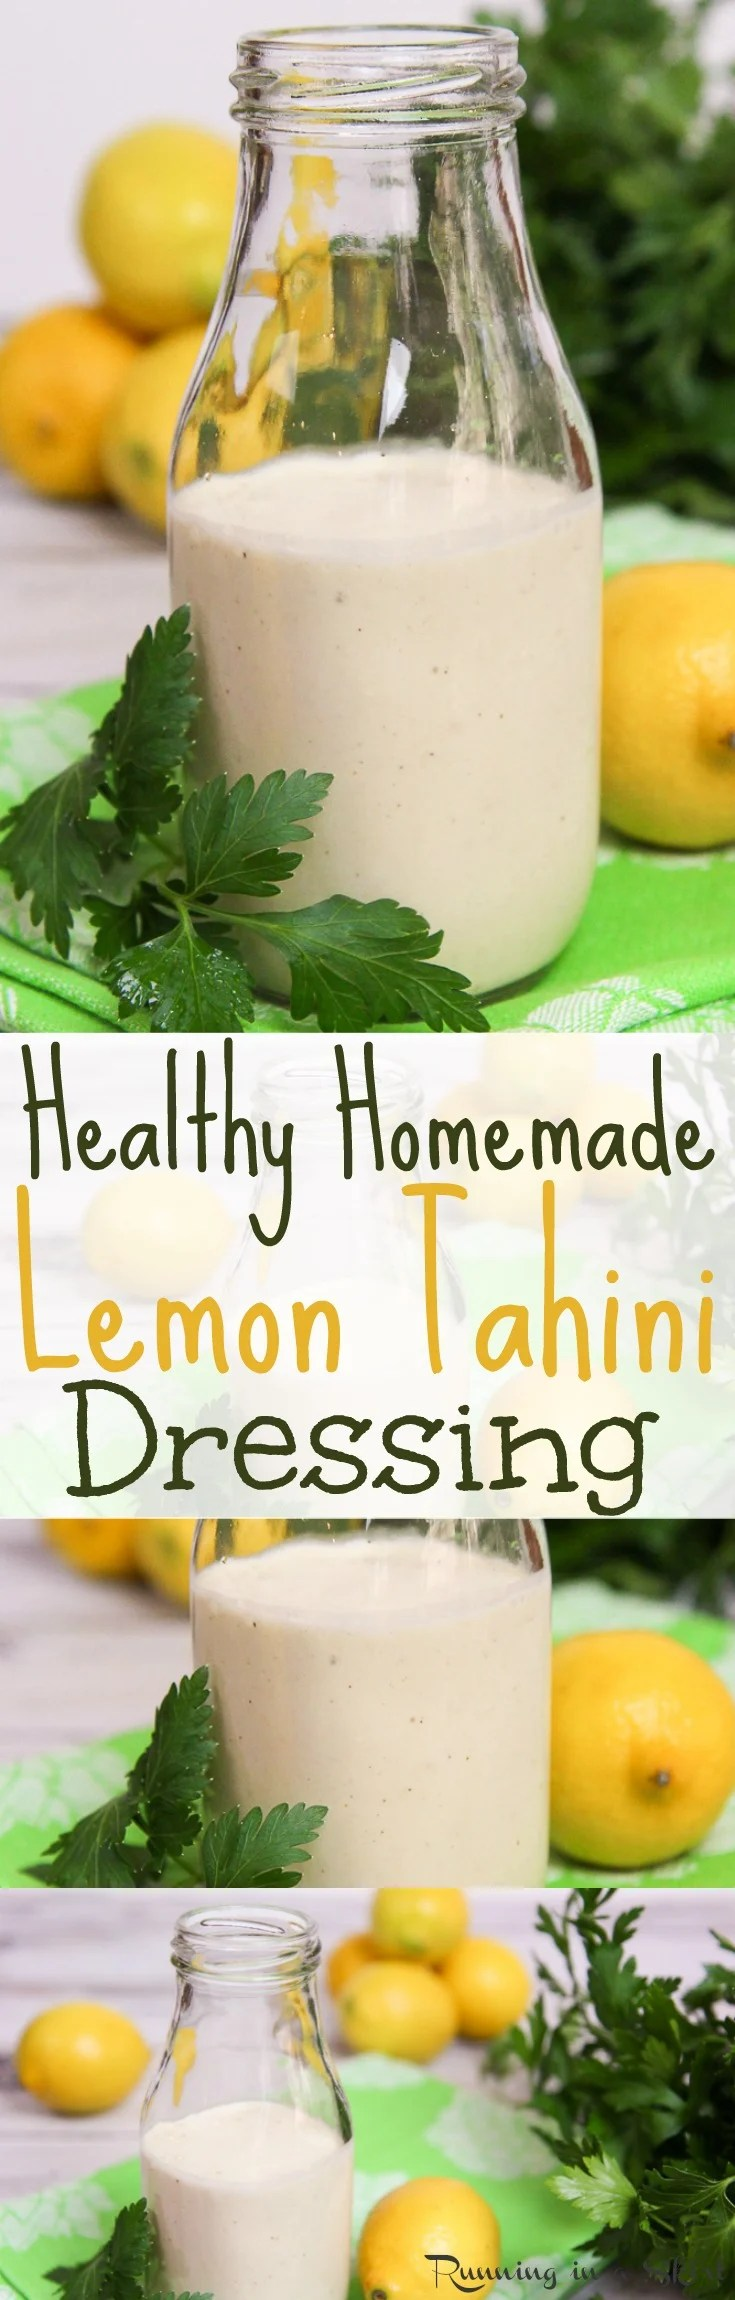 The Best 4 Ingredient Lemon Tahini Dressing recipe. This healthy, homemade, clean eating dressing is easy and vegan.  It's great for salads, veggies, roasted vegetables, a buddha bowl or any vegetarian dish.  Tastes amazing! / Running in a Skirt